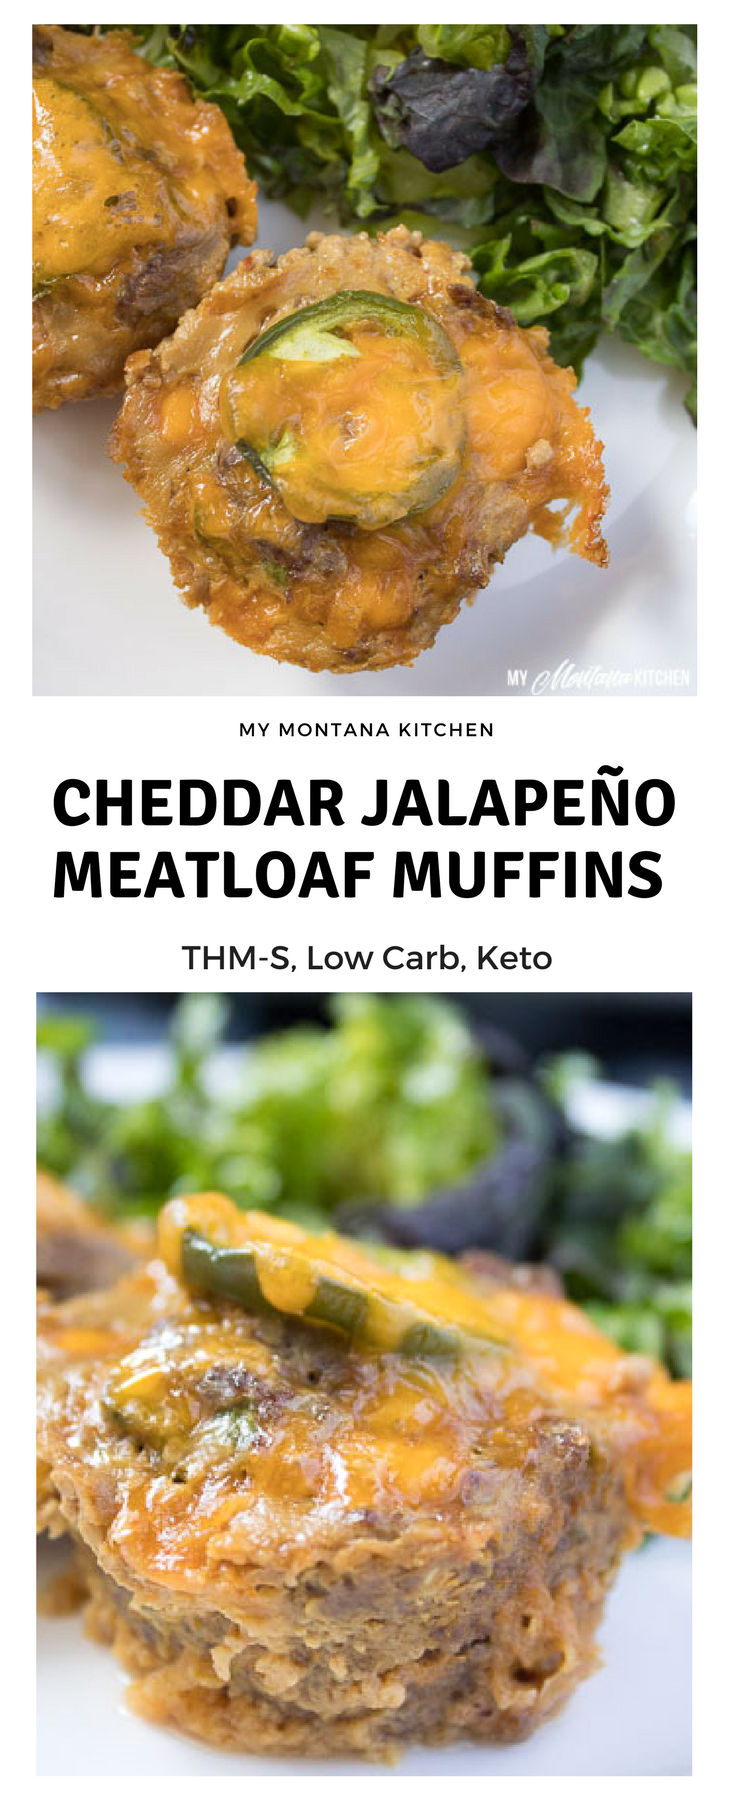 Jalapeño Meatloaf Muffins (Low Carb, THM-S, Keto)